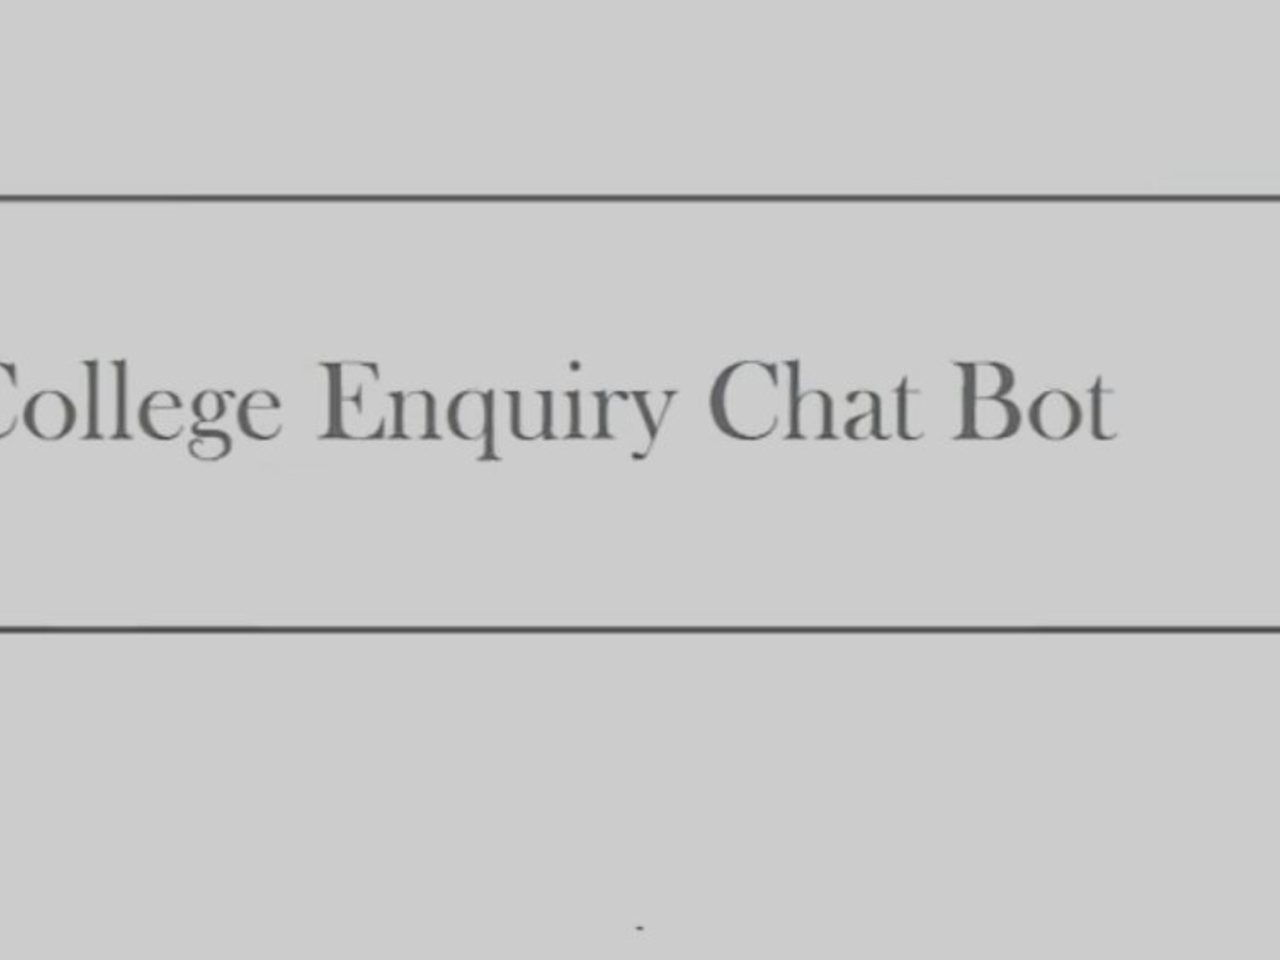 college enquiry chatbot